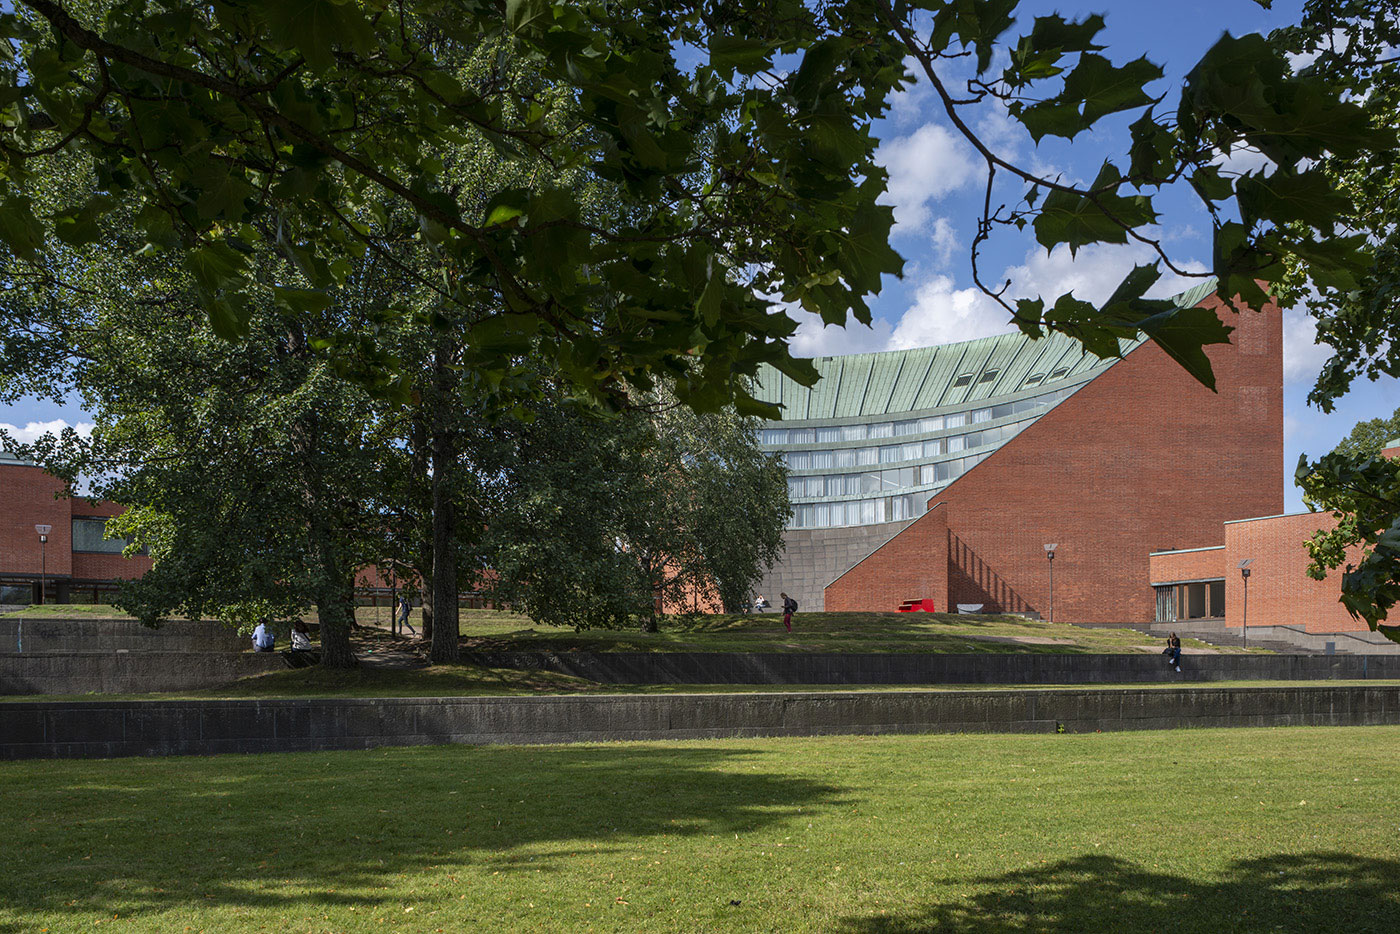 Link to event The Cultivated Landscape of Alvar Aalto